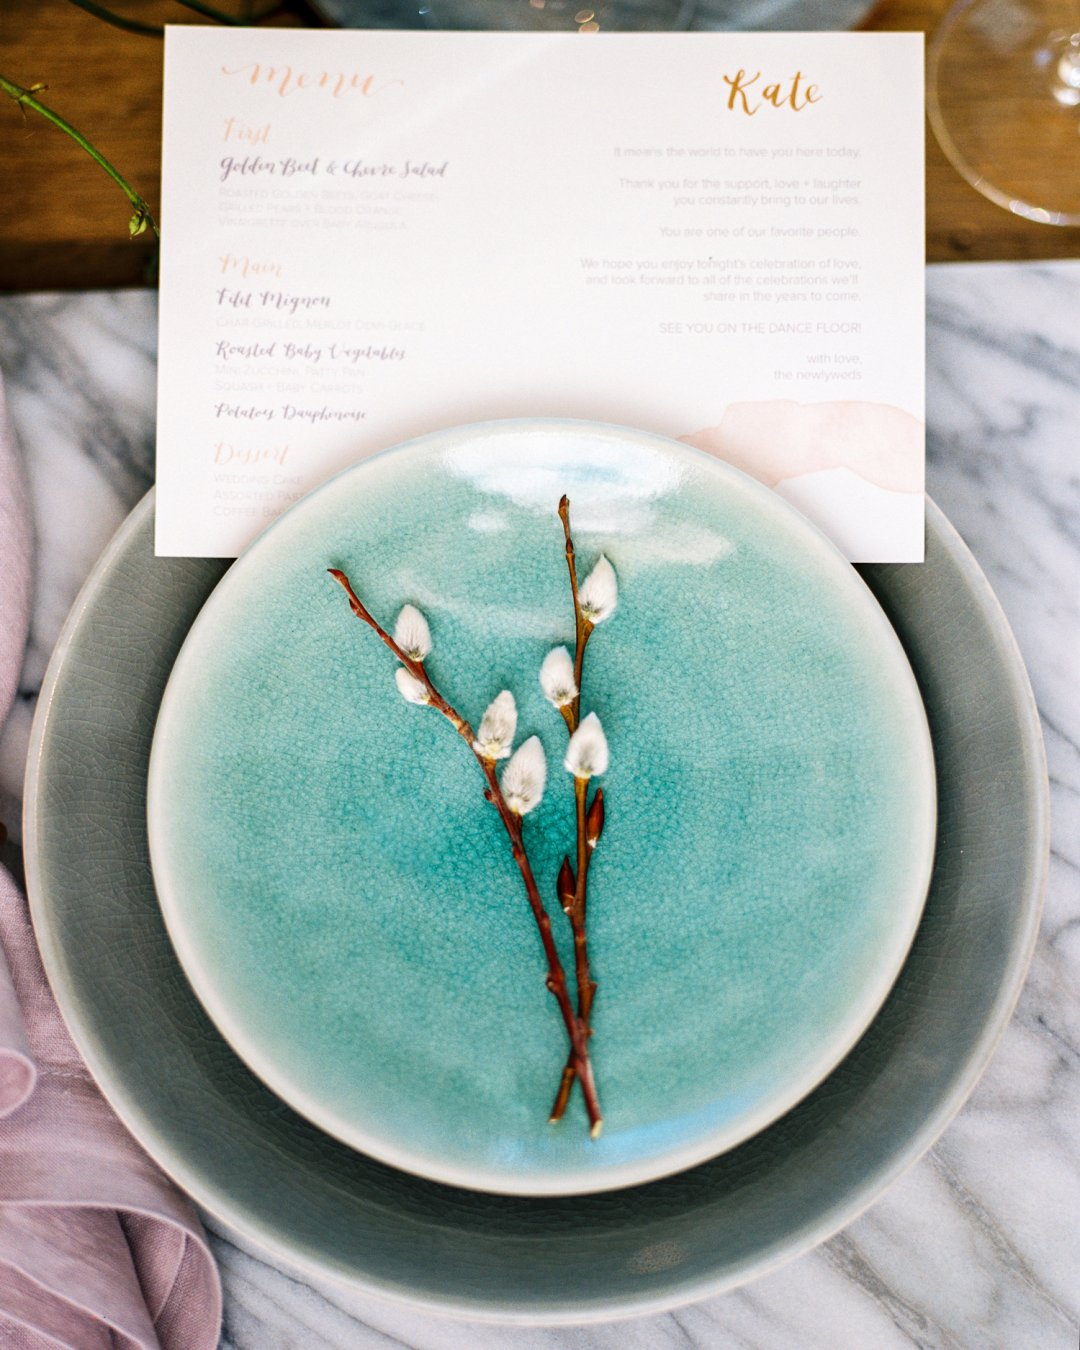 Aqua colored plates for wedding table setting